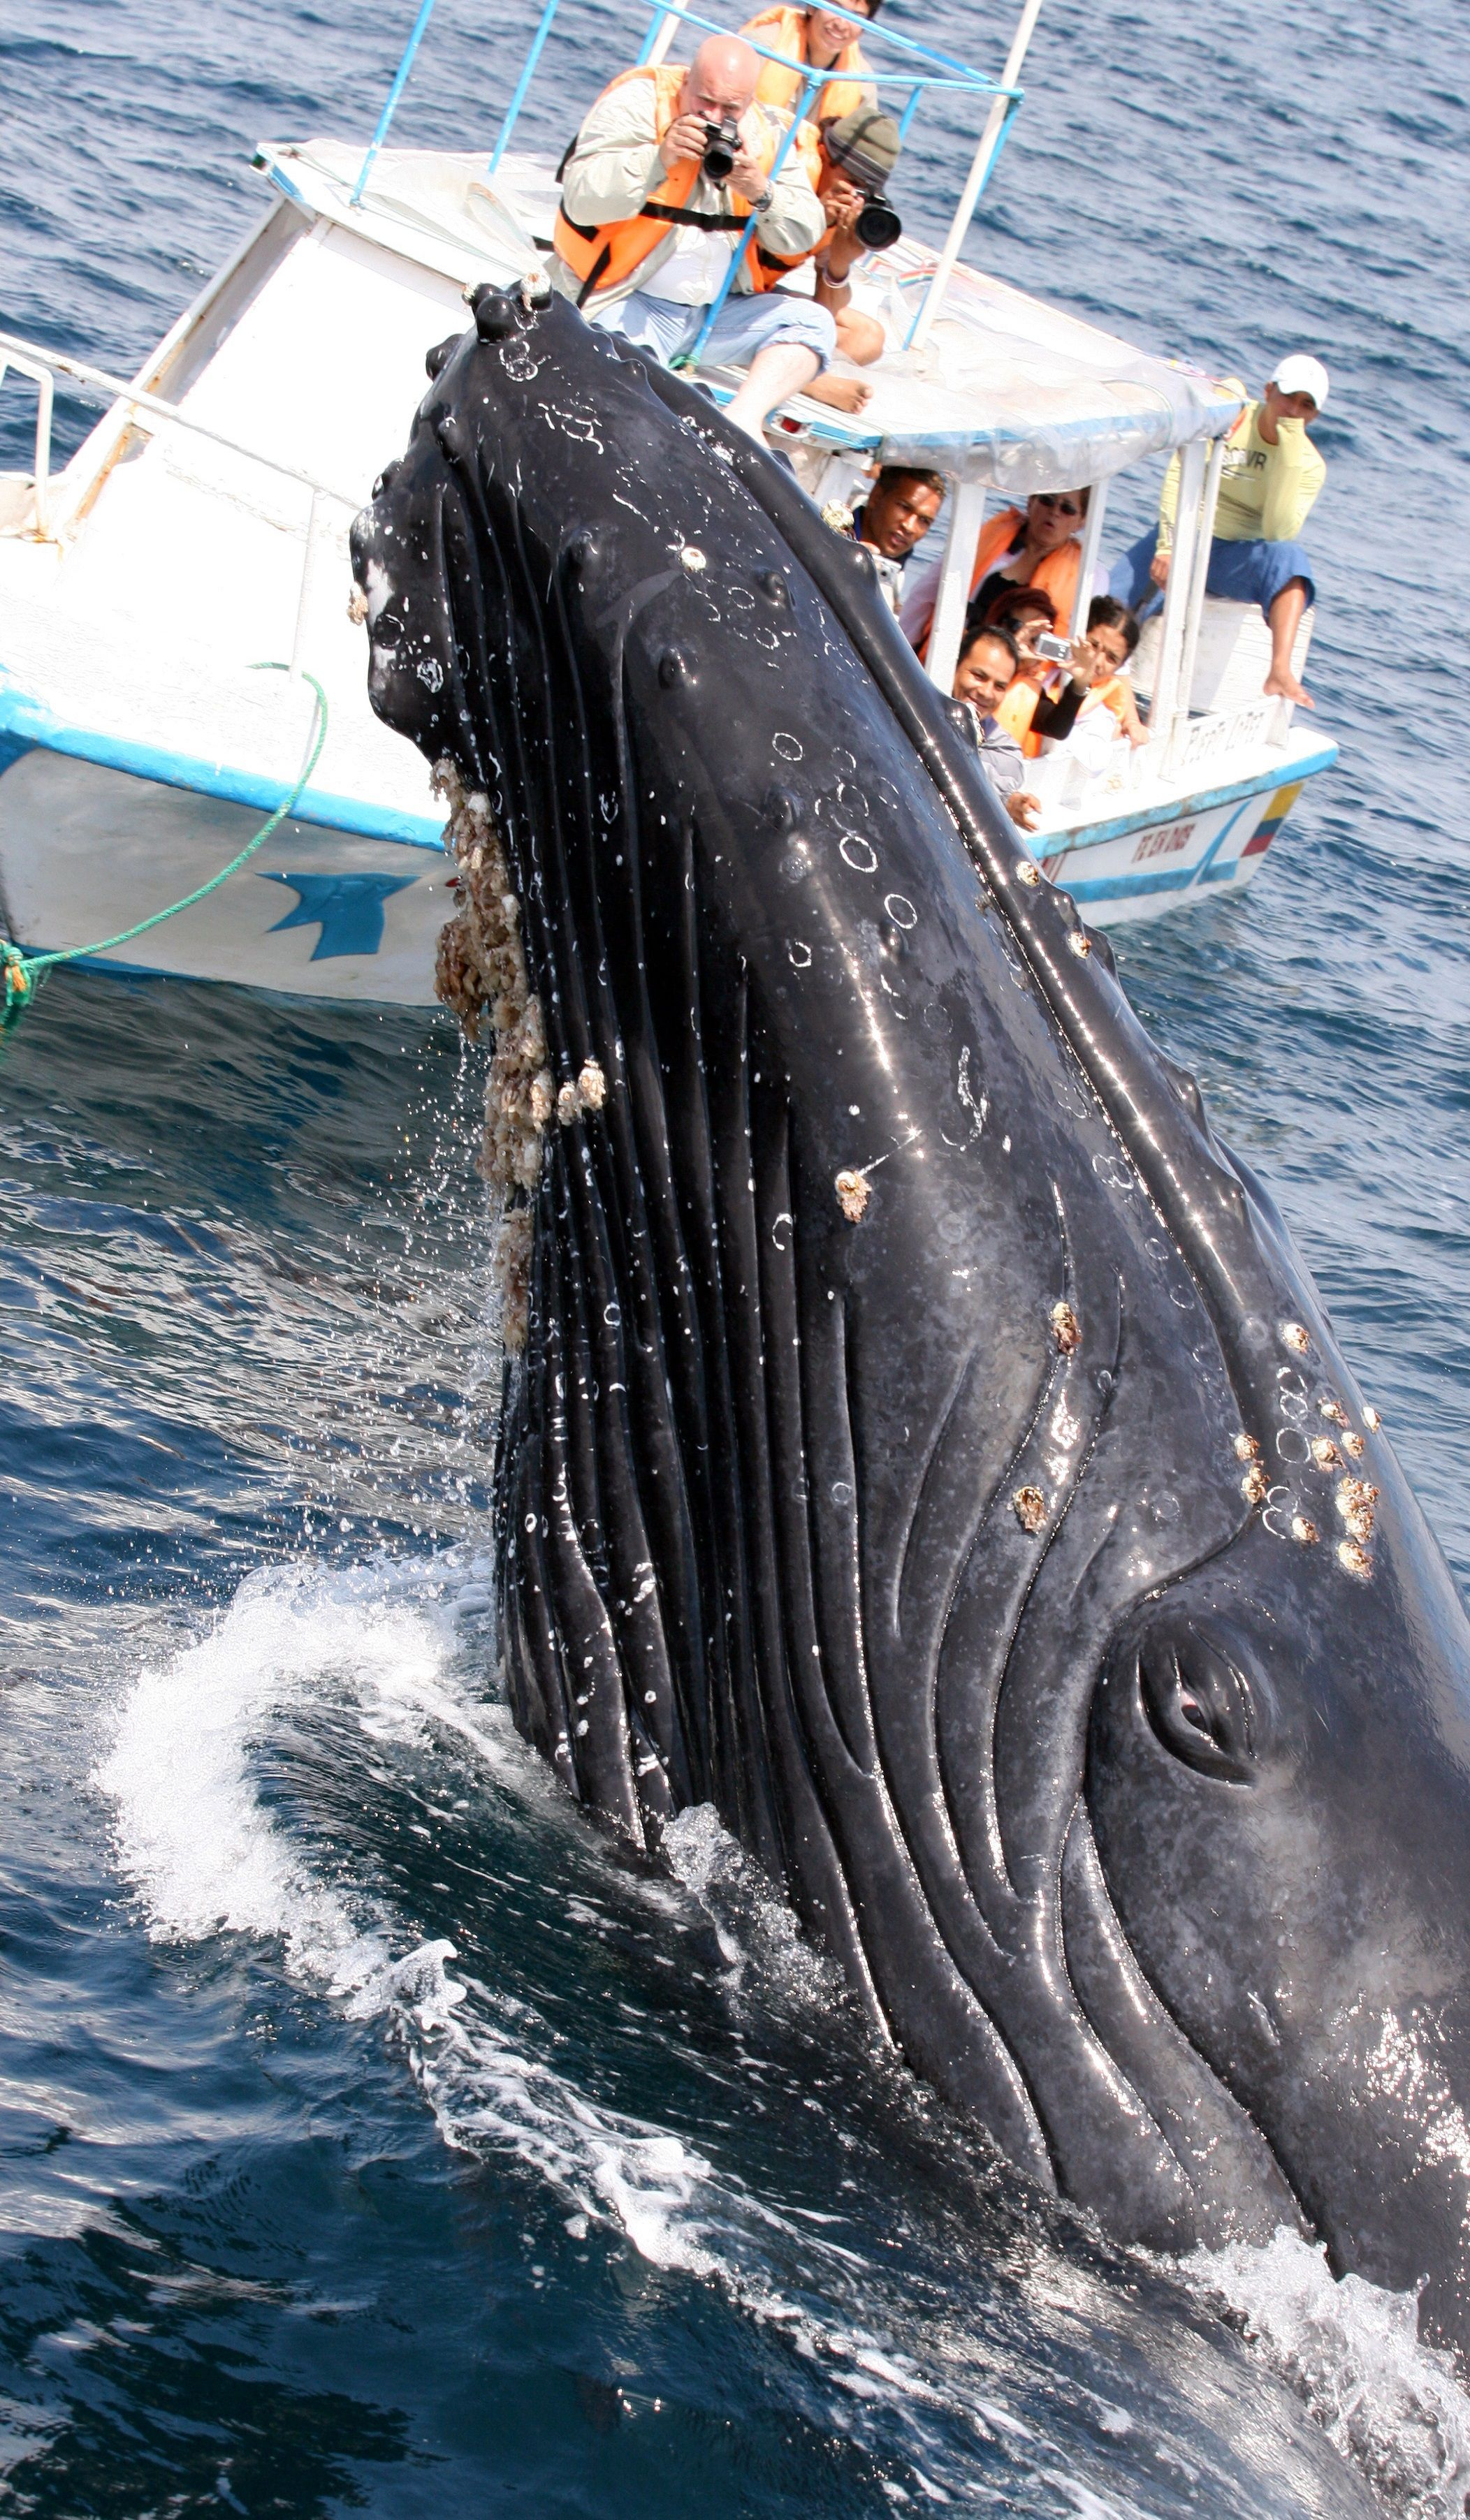 Best Whale Watching Tours Hawaii